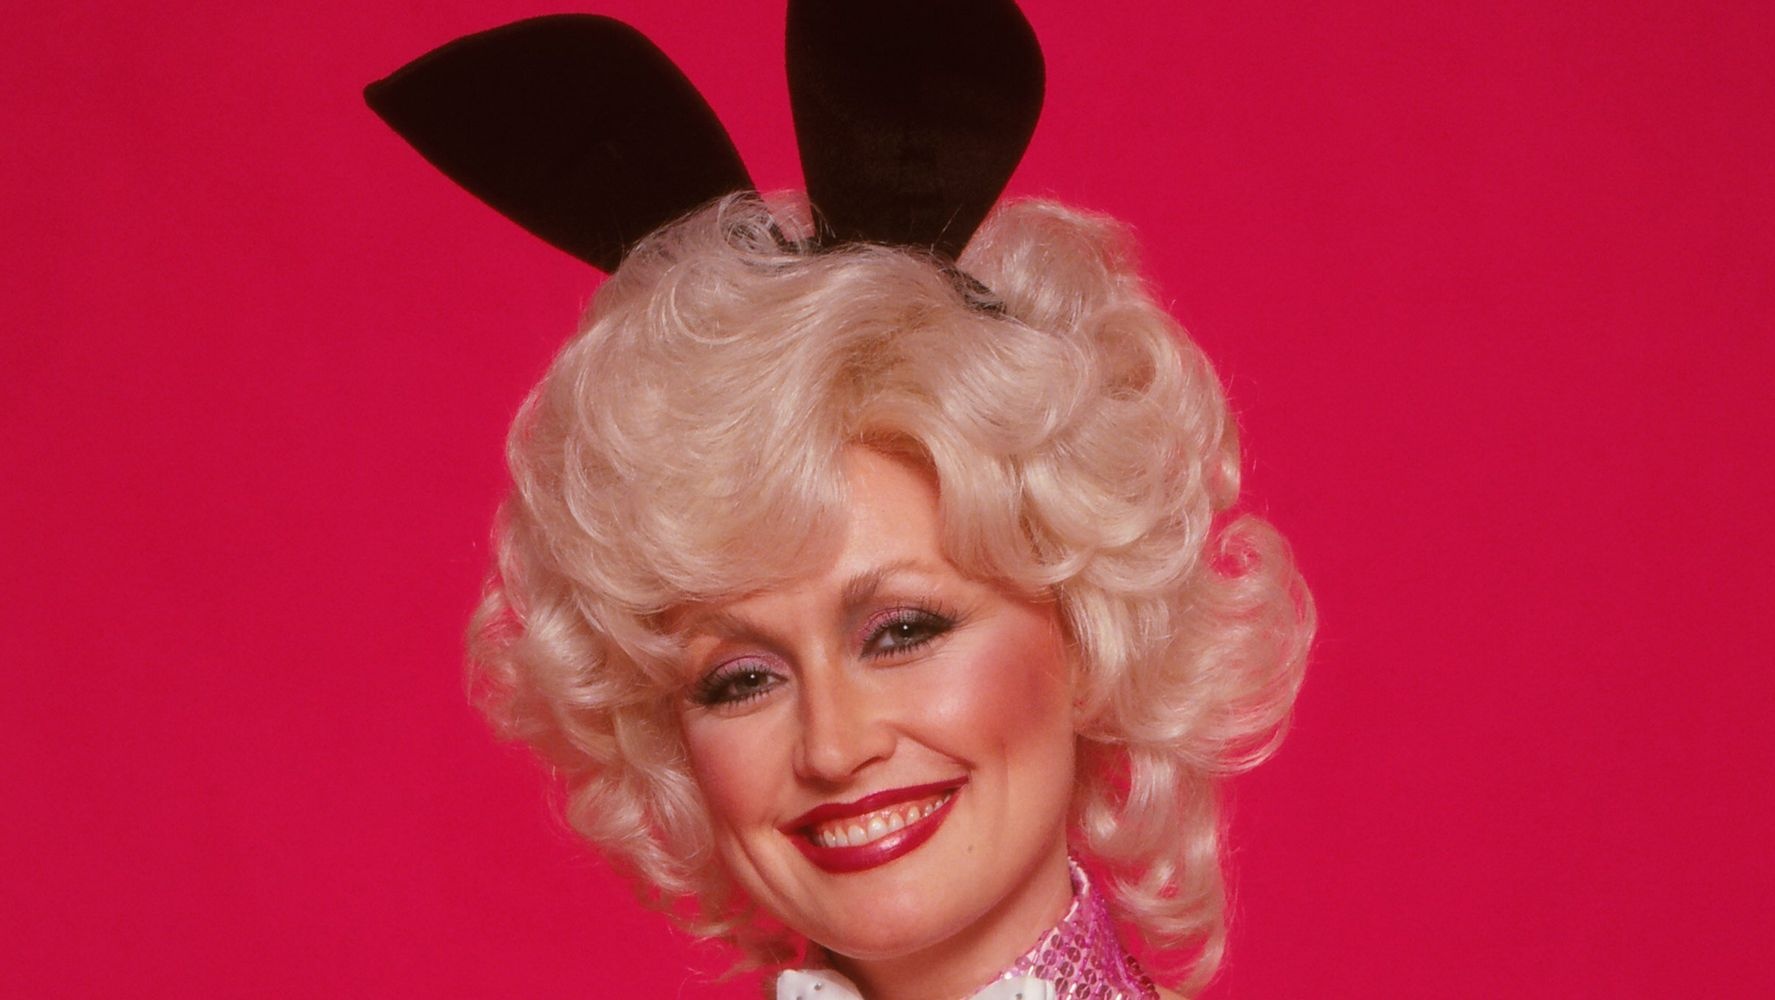 Dolly Parton Recreates 1978 Playboy Cover For Her Husband's Birthday